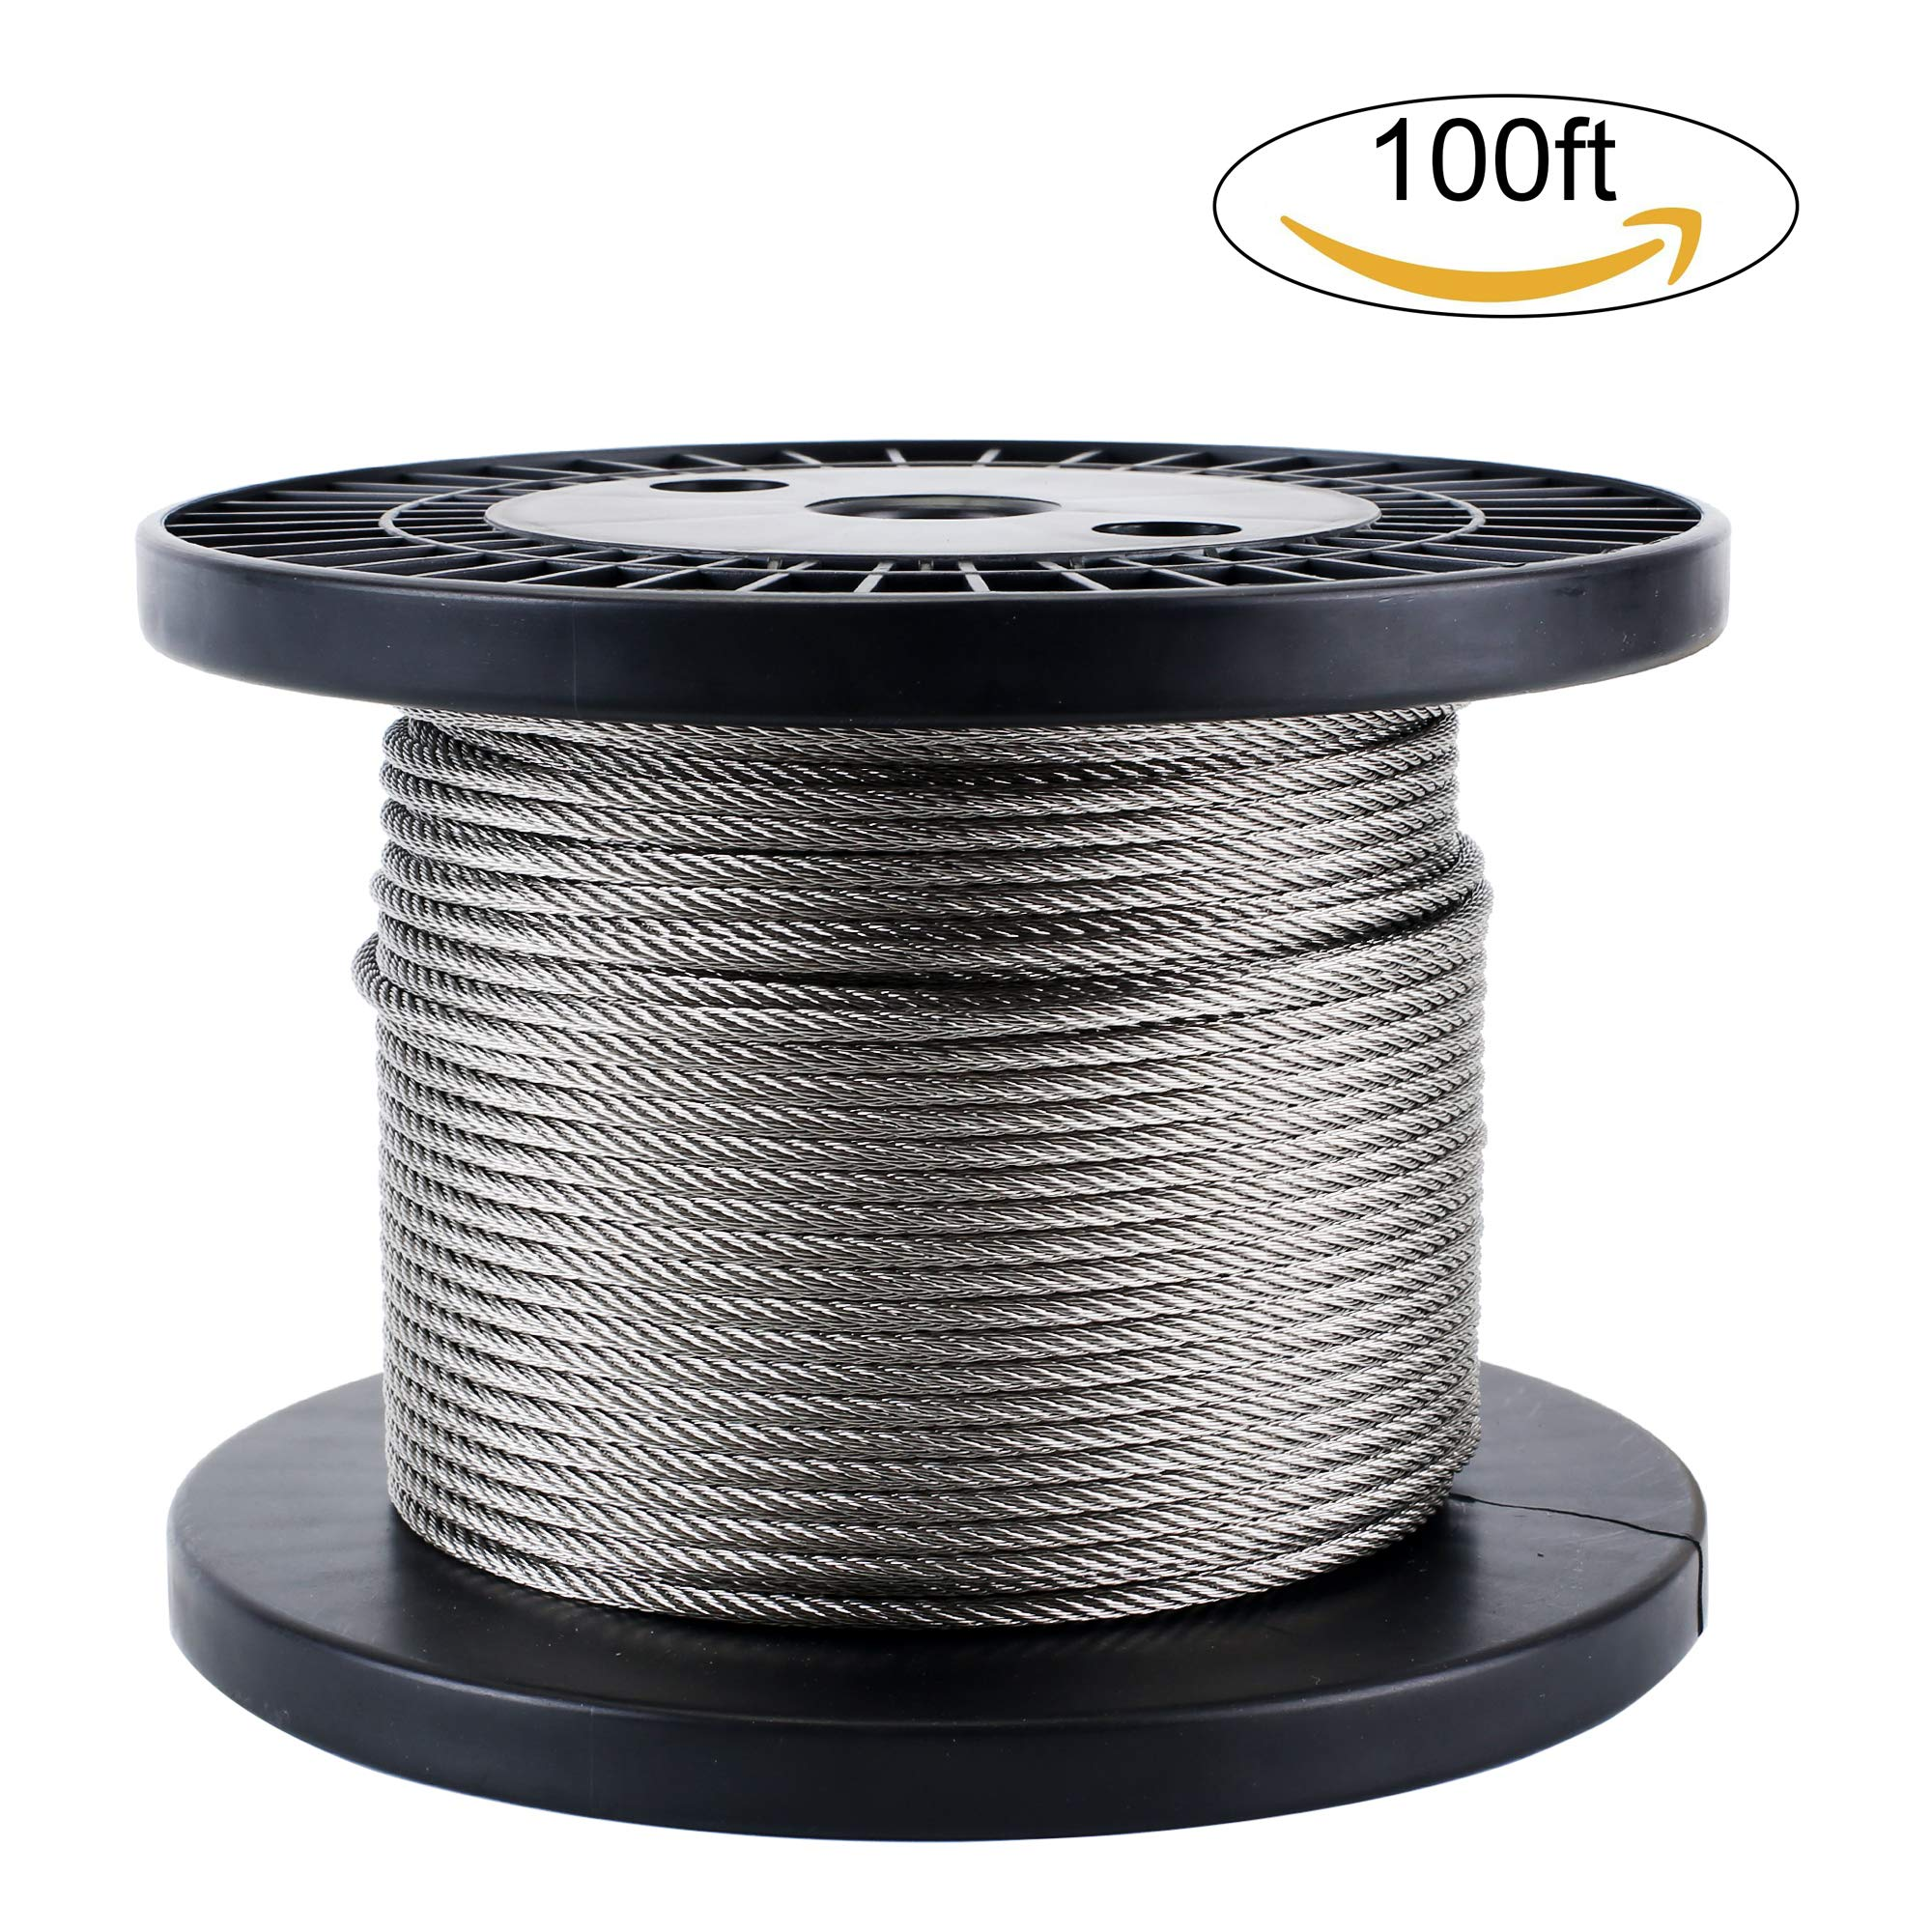 Zoostliss 100Ft Stainless Steel Aircraft Wire Rope 1/8'' for Deck Cable Railing Kit, 7x7 T316 Marin Grade by Zoostliss